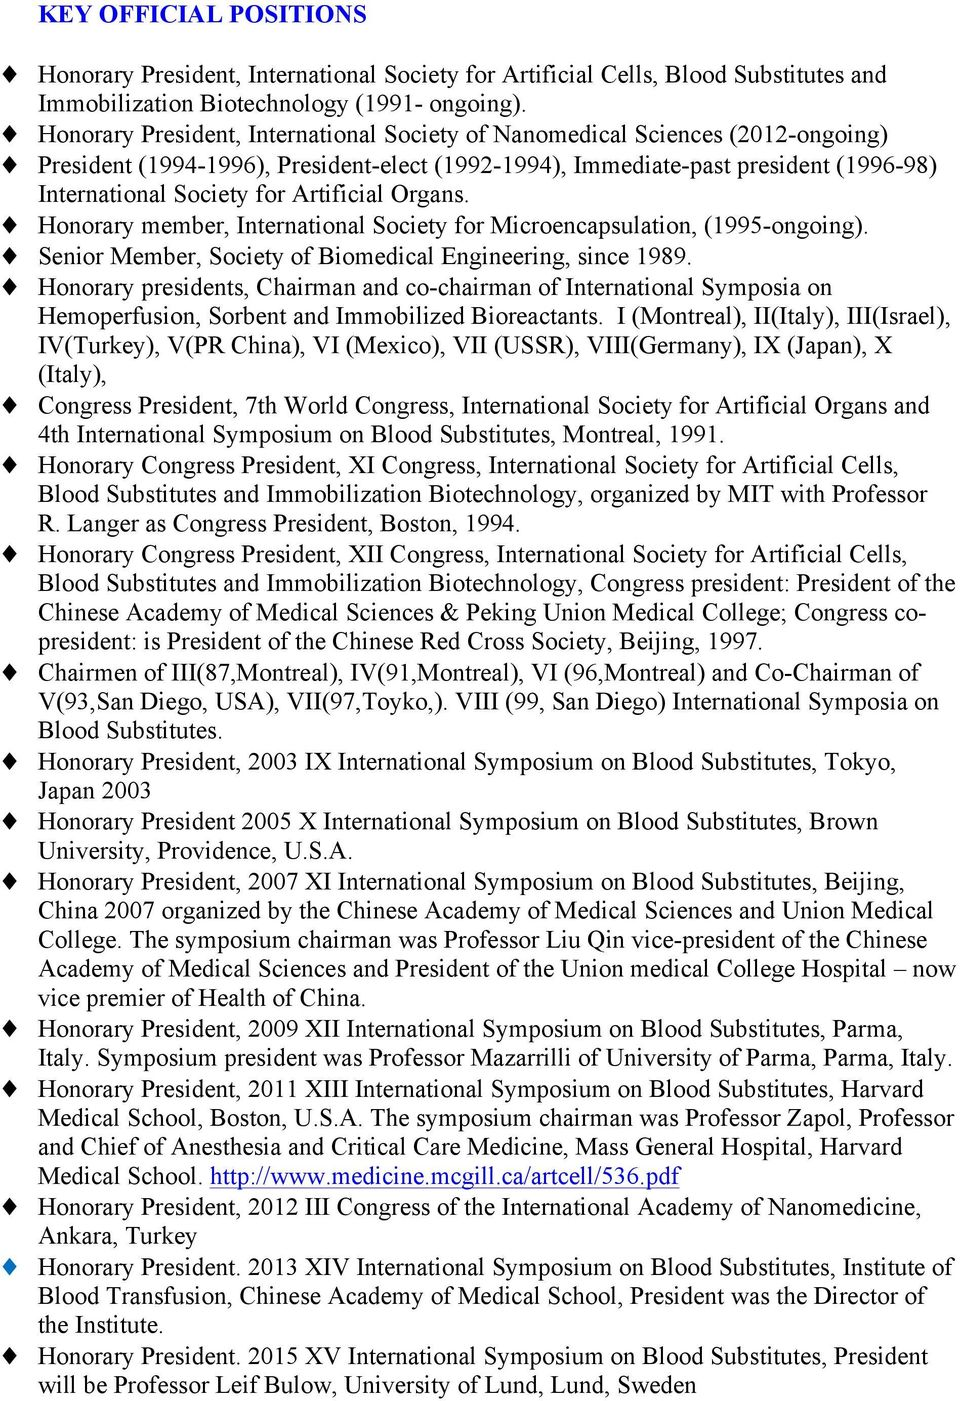 Artificial Organs. Honorary member, International Society for Microencapsulation, (1995-ongoing). Senior Member, Society of Biomedical Engineering, since 1989.